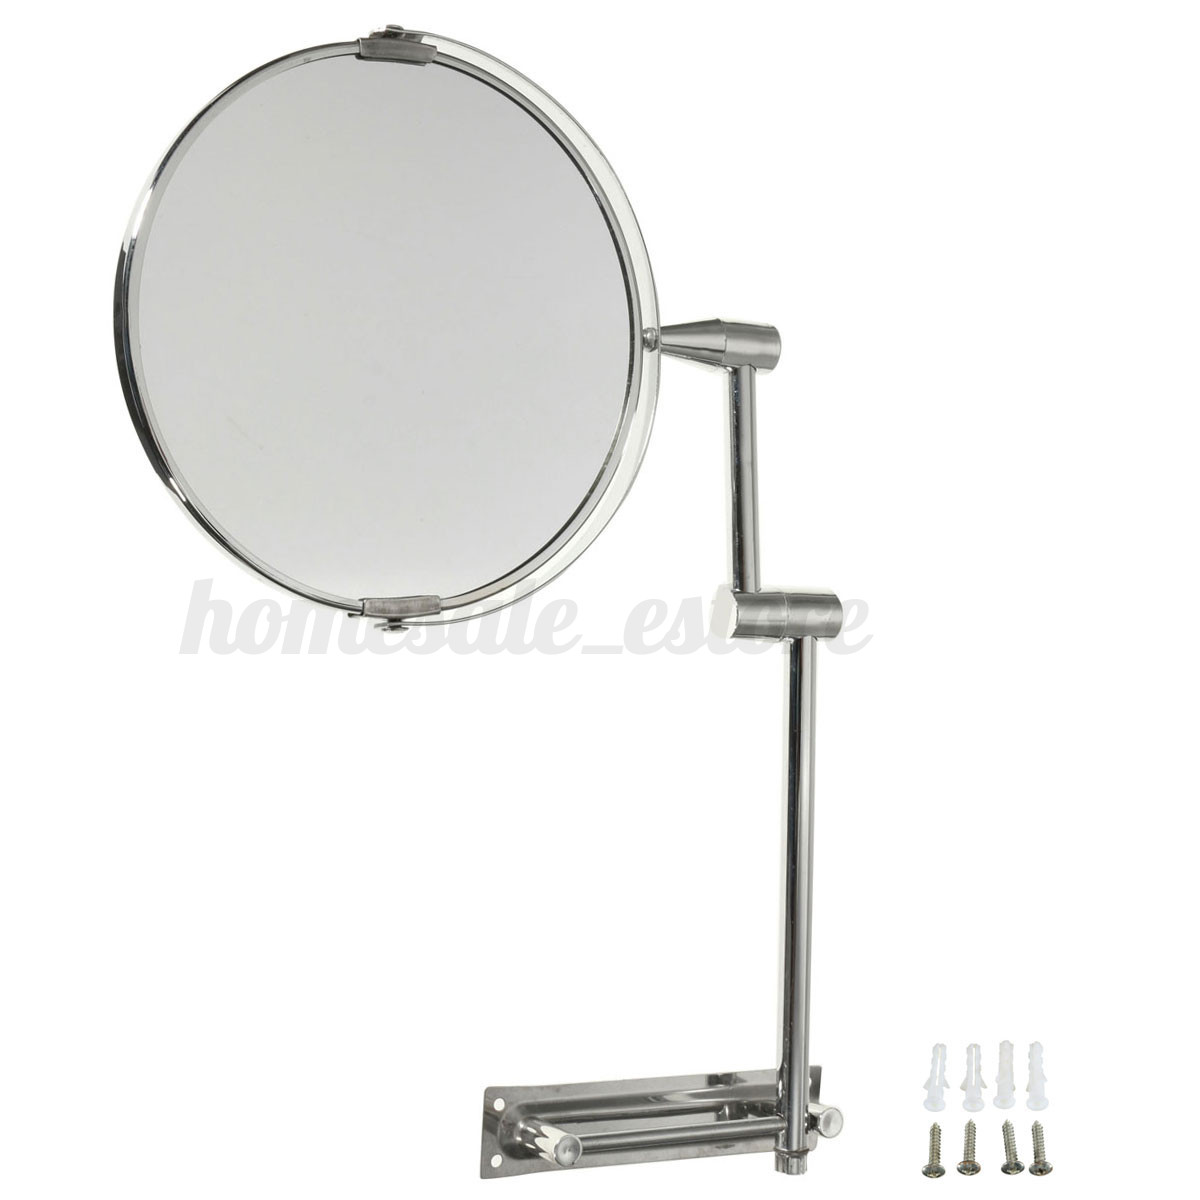 Extending Double Sided Wall Mounted Mirror Bathroom Cosmetic Makeup Magnifying